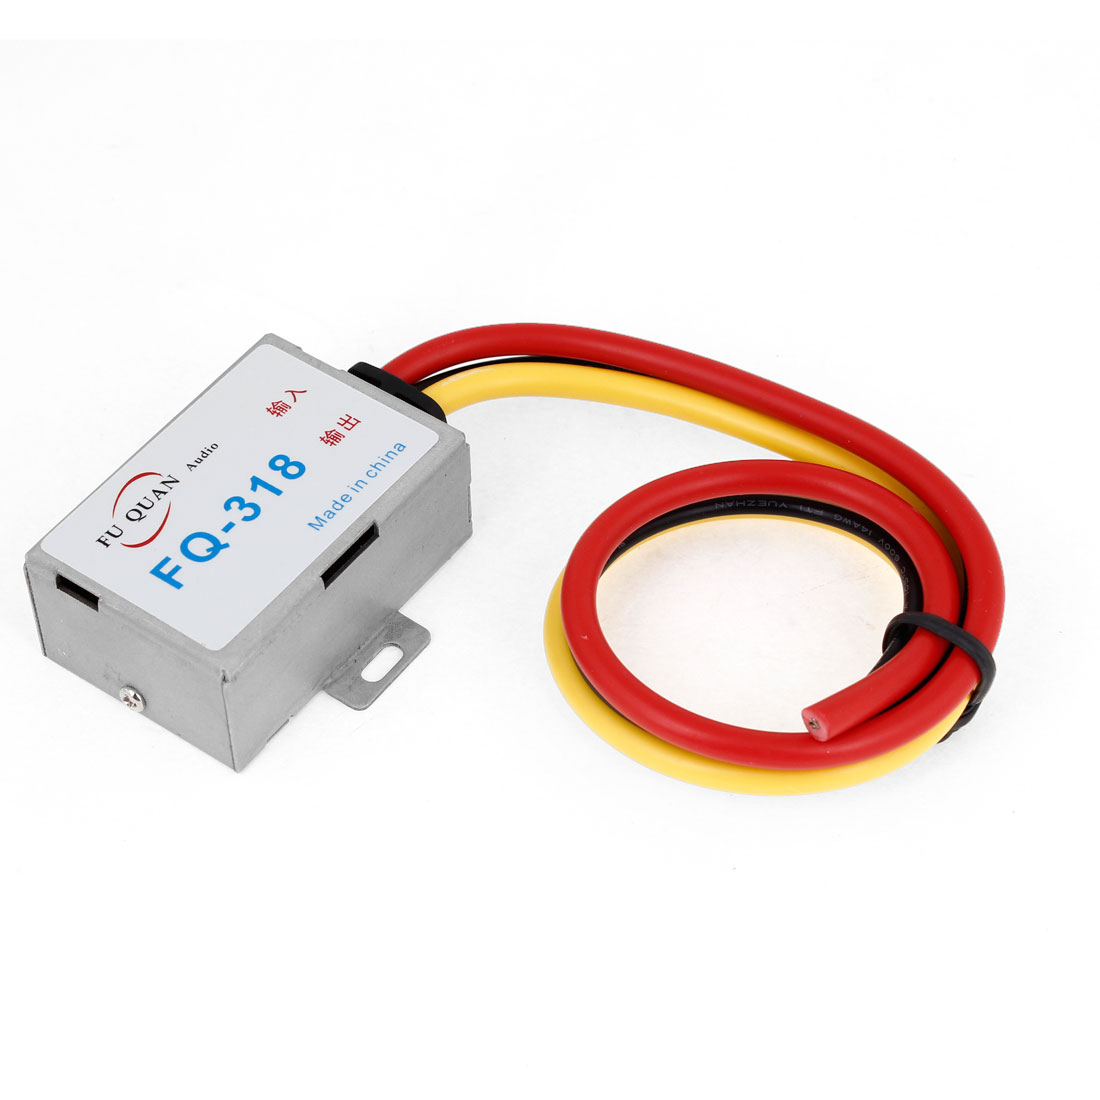 DC 12V Pre-wired Metal Audio Noise Power Filter for Auto Car